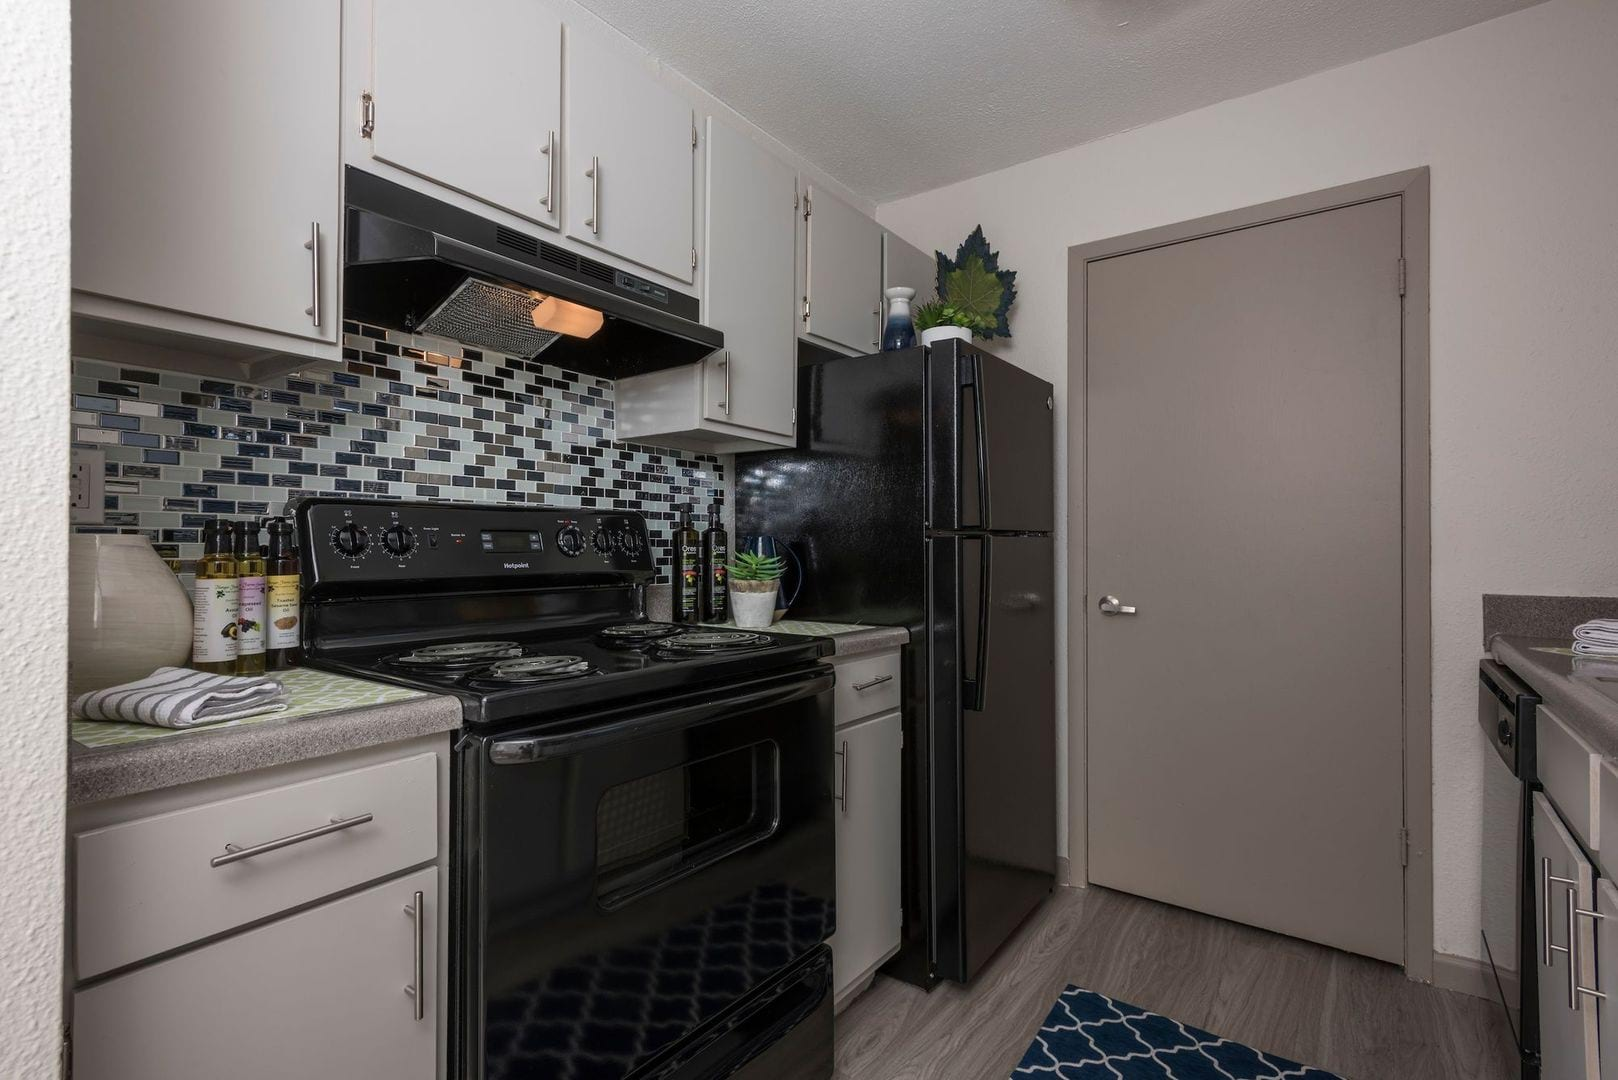 Fine Apartments For Rent In Arlington Tx Element Apartments Home Interior Design Ideas Oxytryabchikinfo